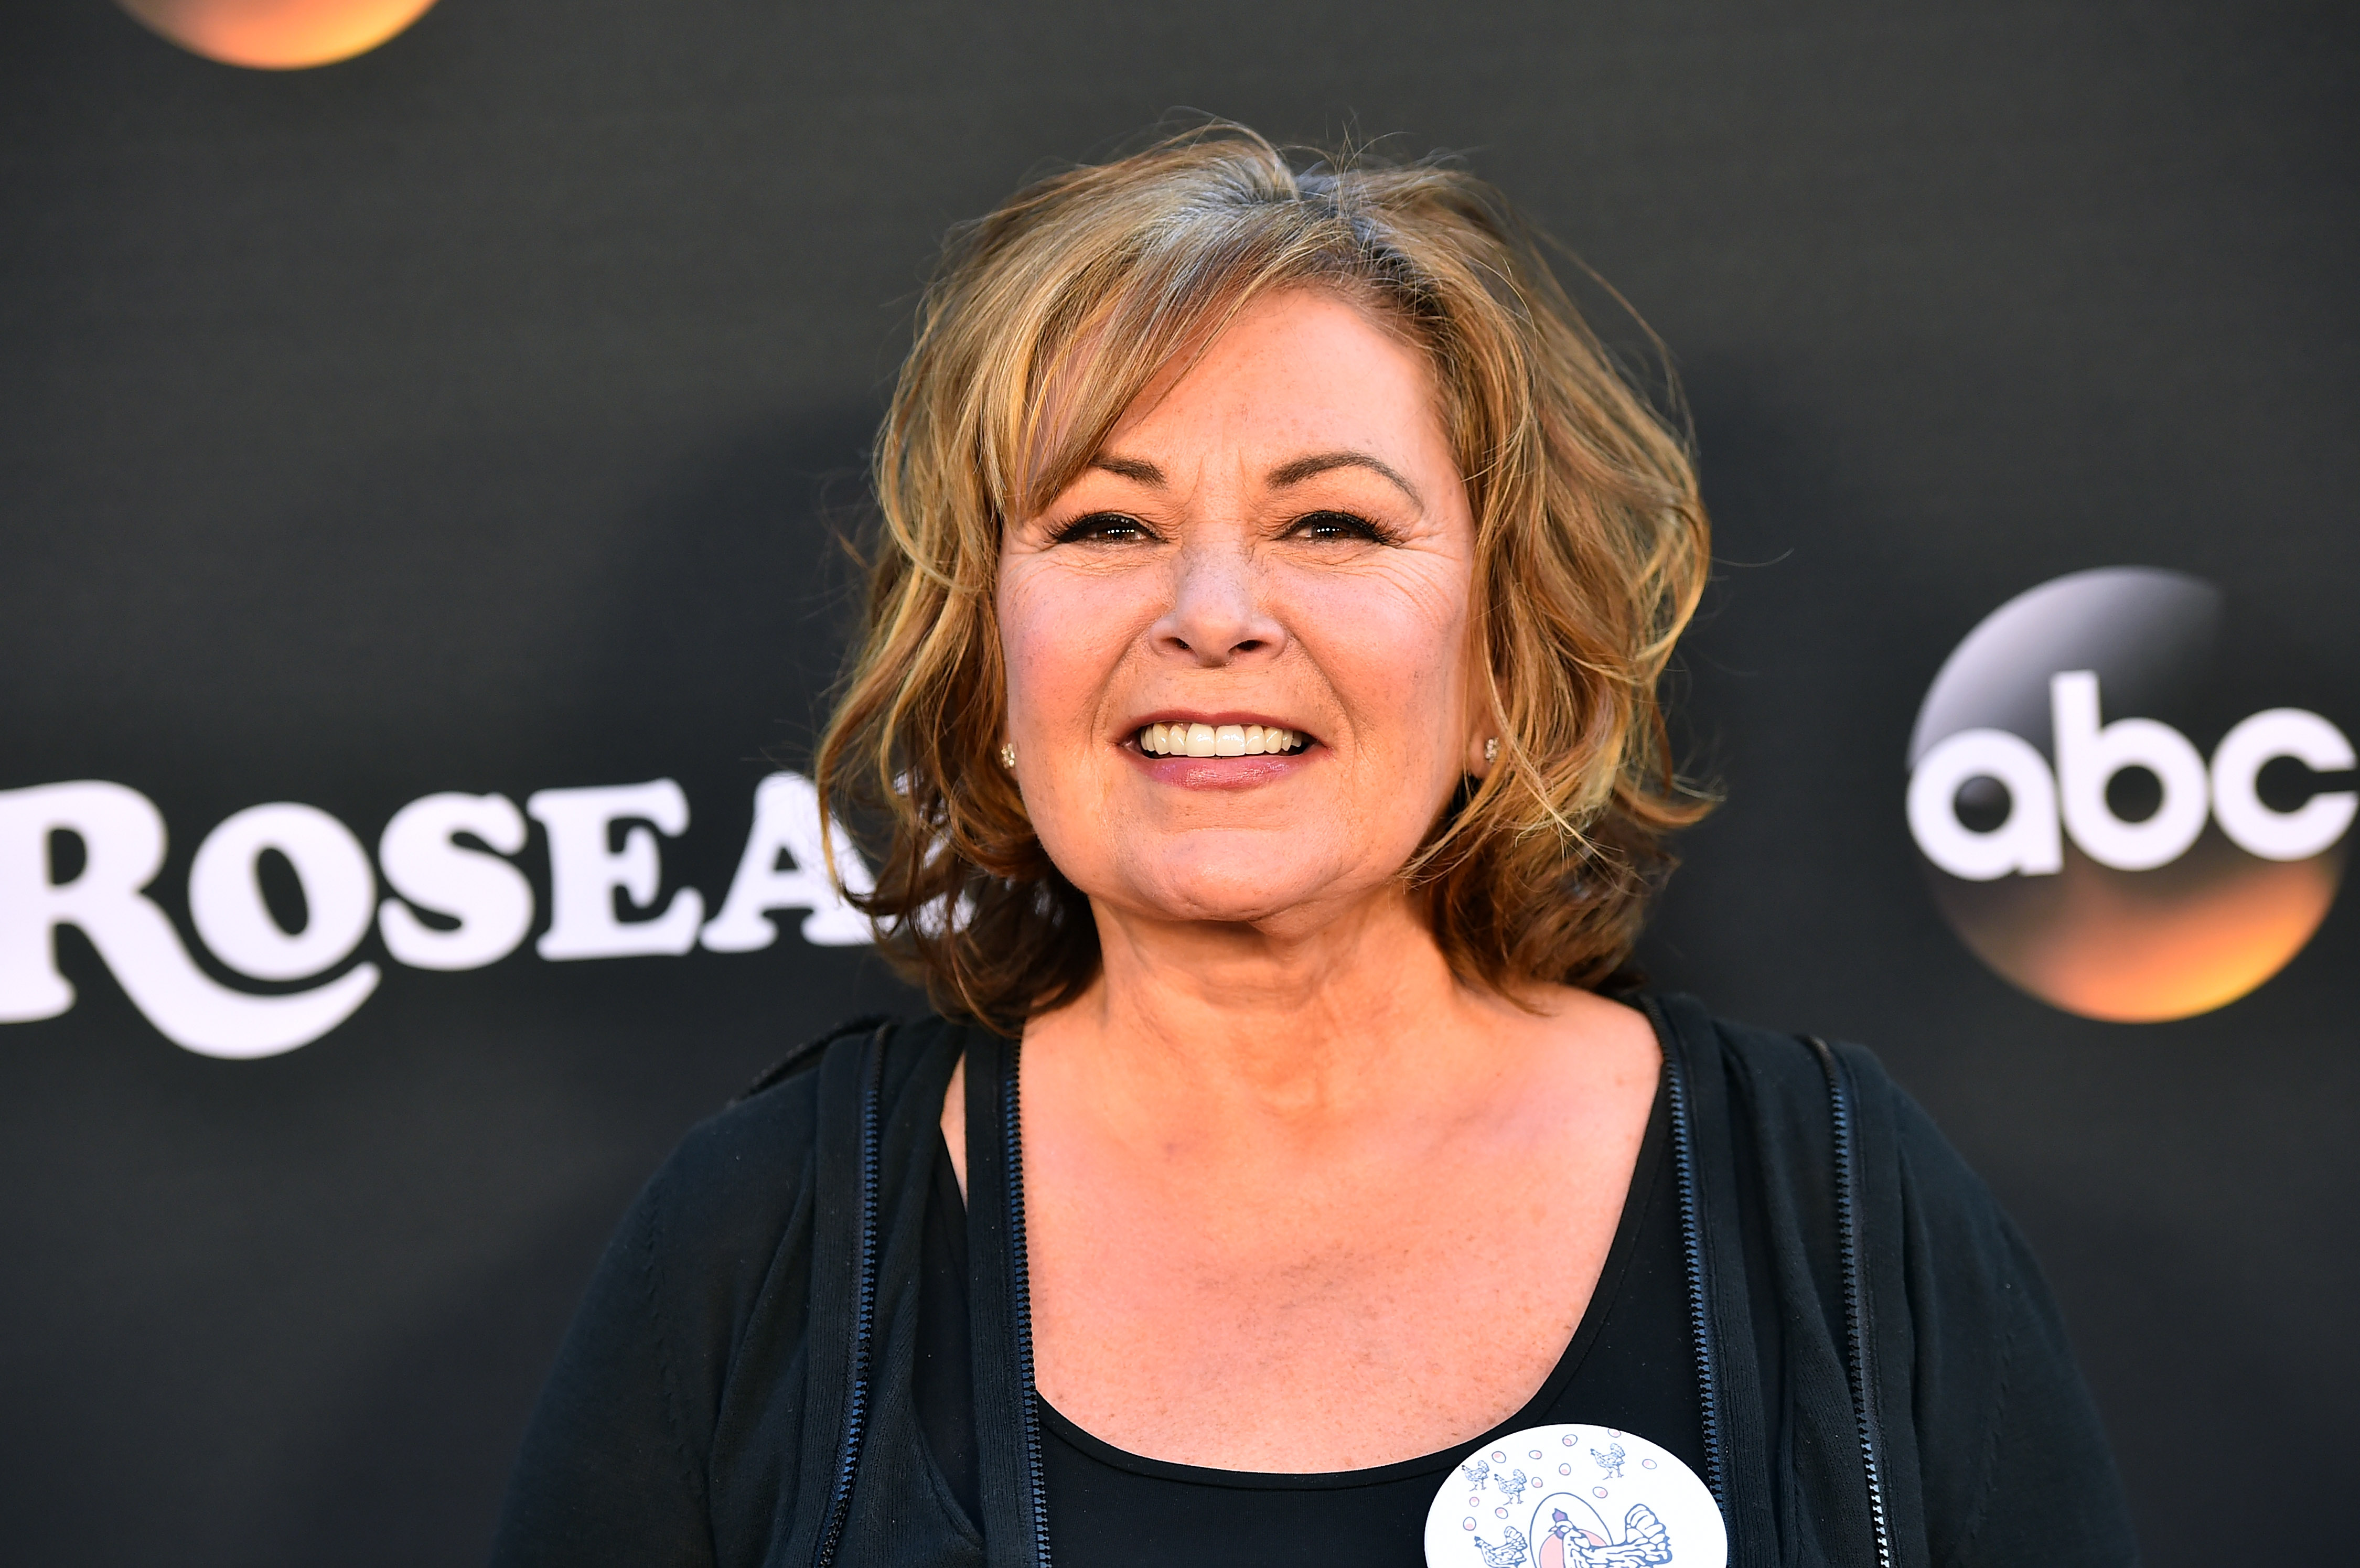 Roseanne Barr attends the premiere of ABC's  Roseanne  at Walt Disney Studio Lot  in Burbank, Calif. on March 23, 2018.